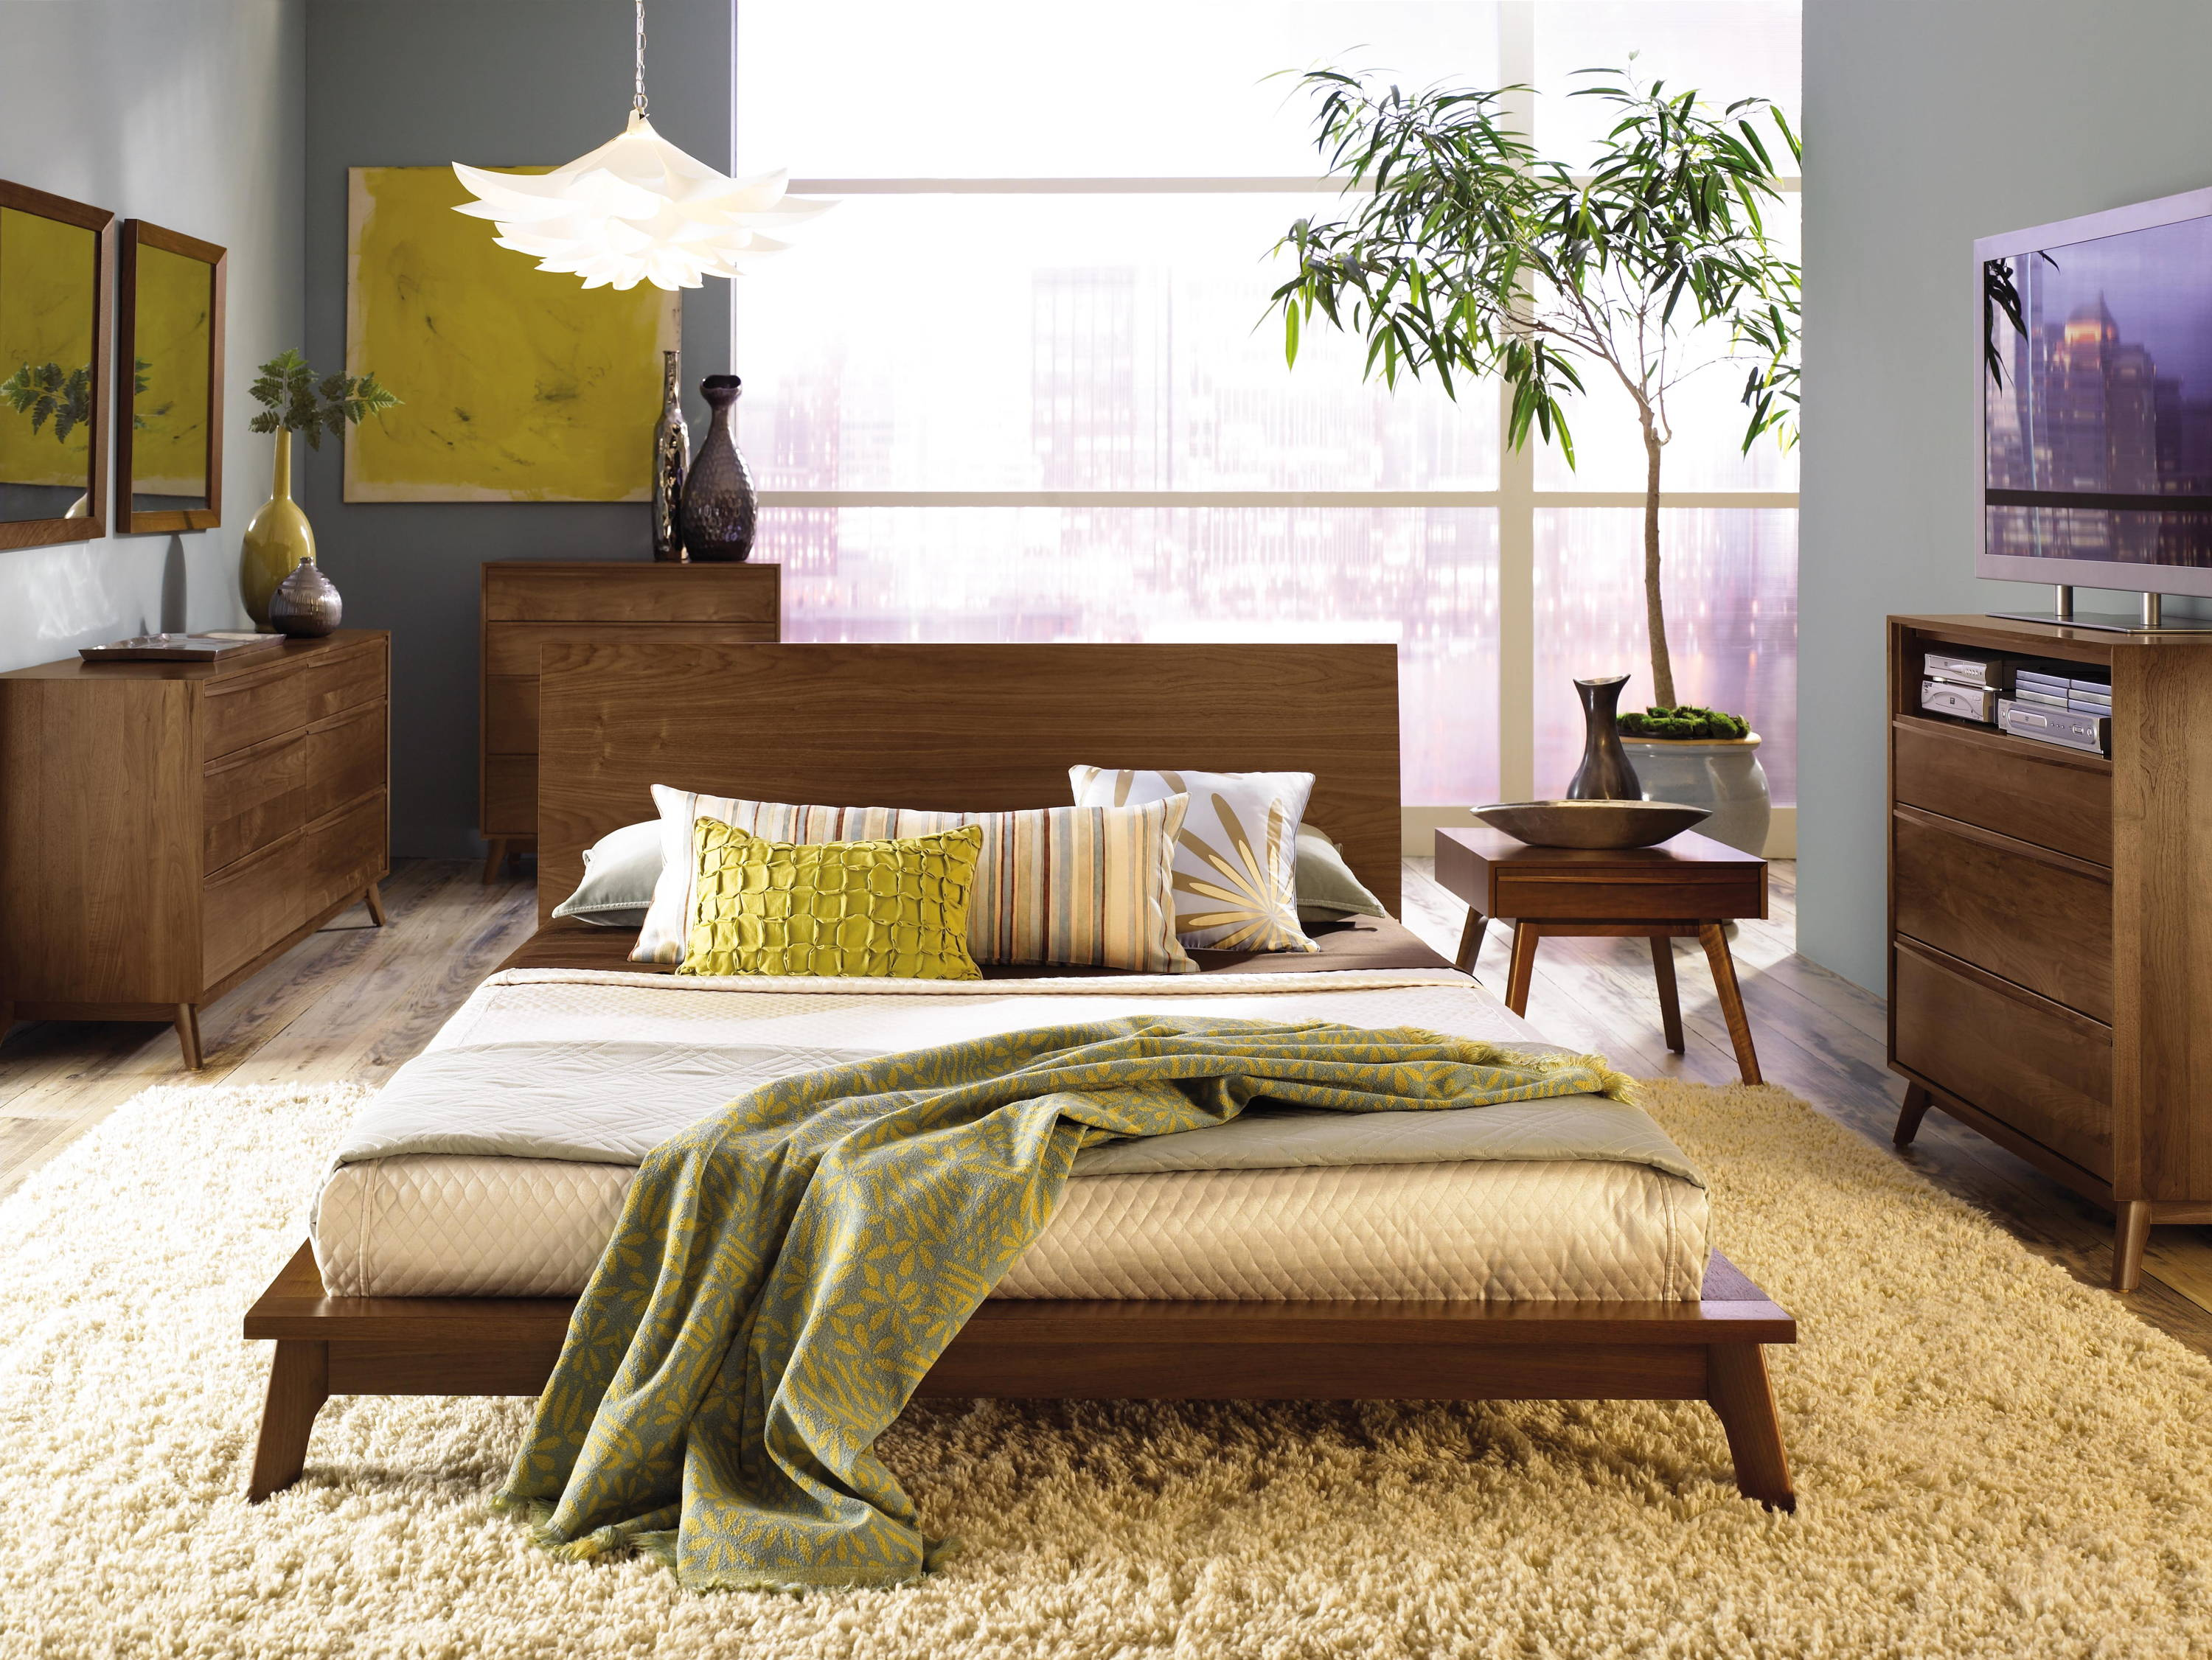 cantobedheadon from natural bed copeland furniture collections canto cupboard bedroom images additional vermont hardwood